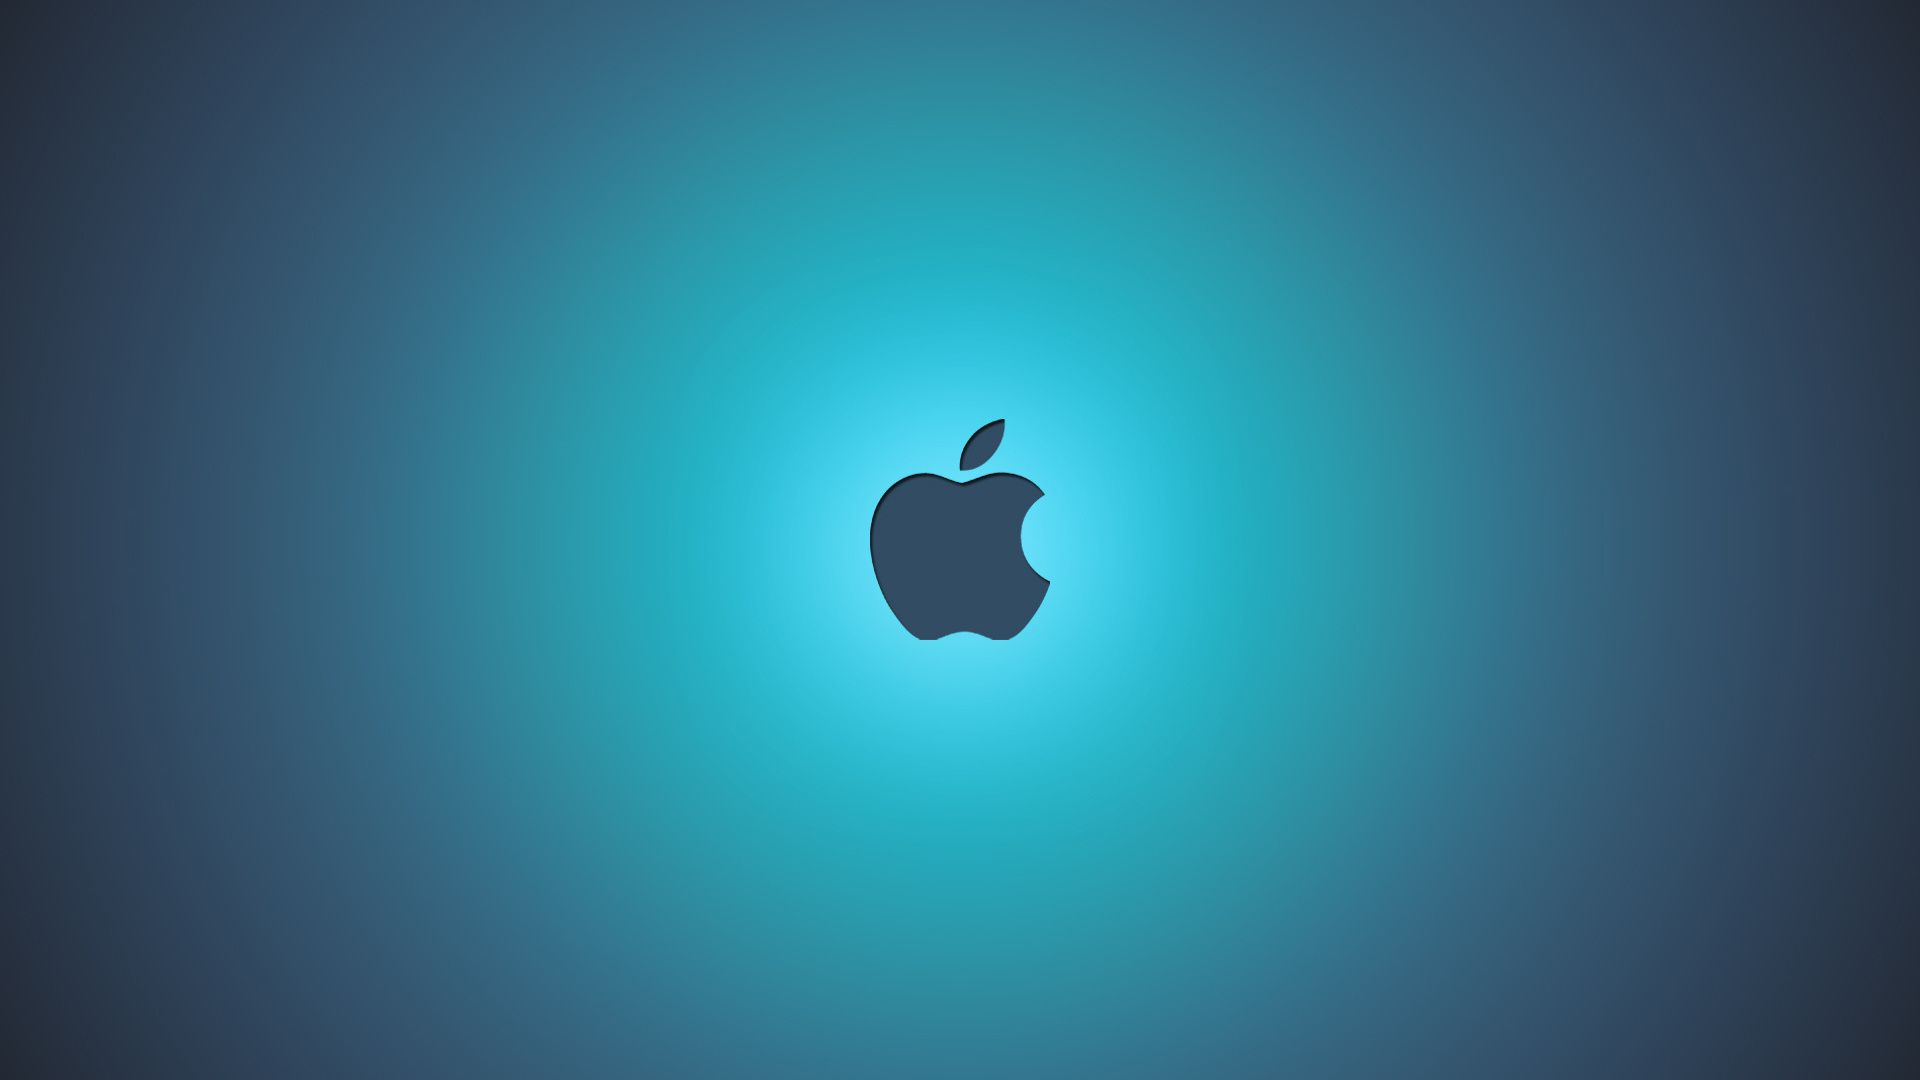 Apple Blue Background Wallpaper Desktop 6250 Wallpaper High Apple Wallpaper Apple Iphone Wallpaper Hd Computer Wallpaper Hd